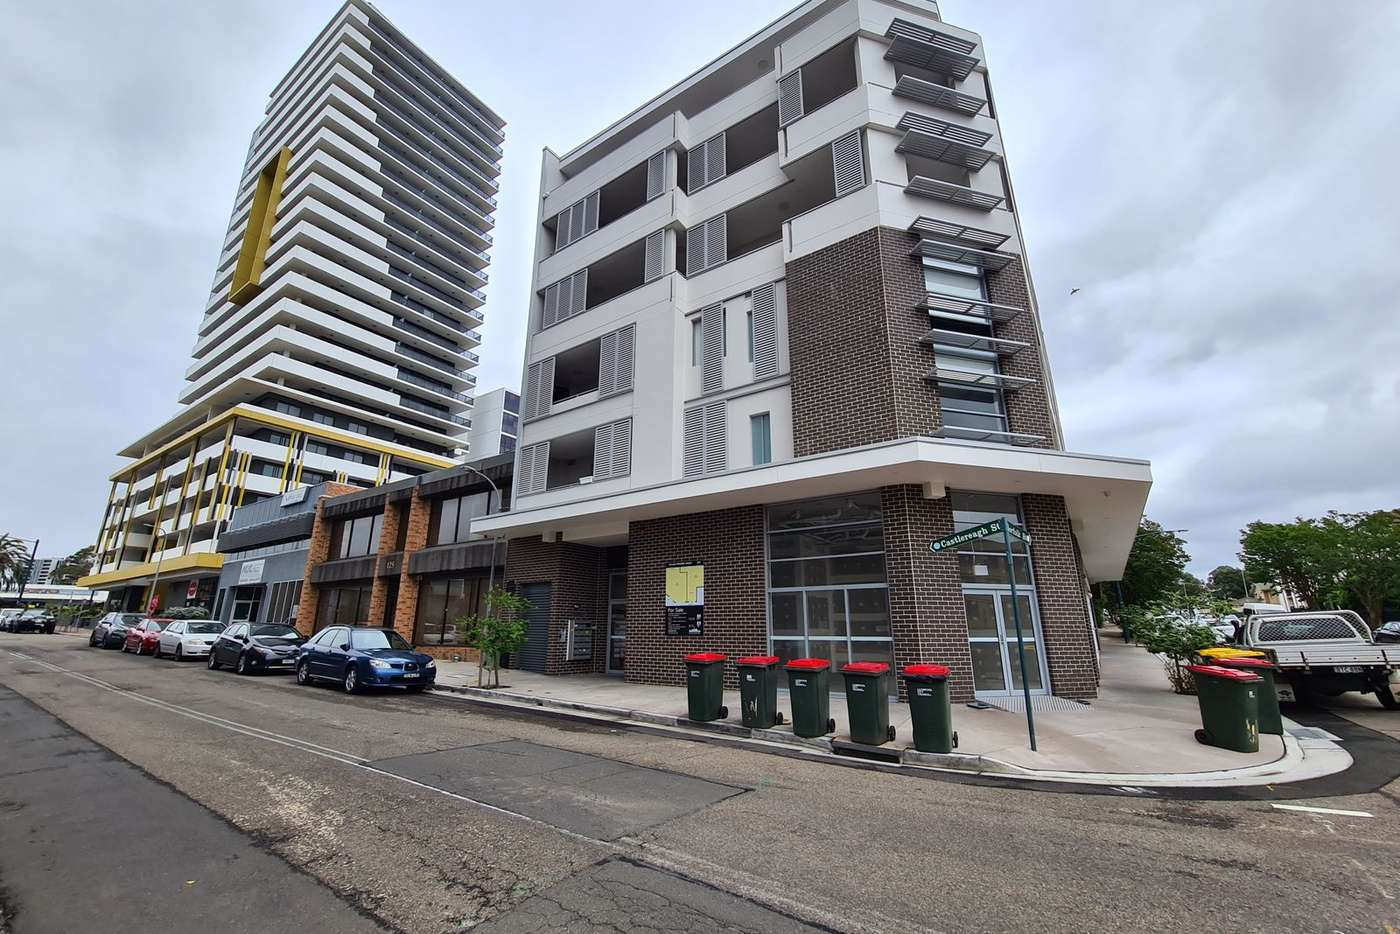 Main view of Homely apartment listing, 301/123 Castlereagh Street, Liverpool NSW 2170